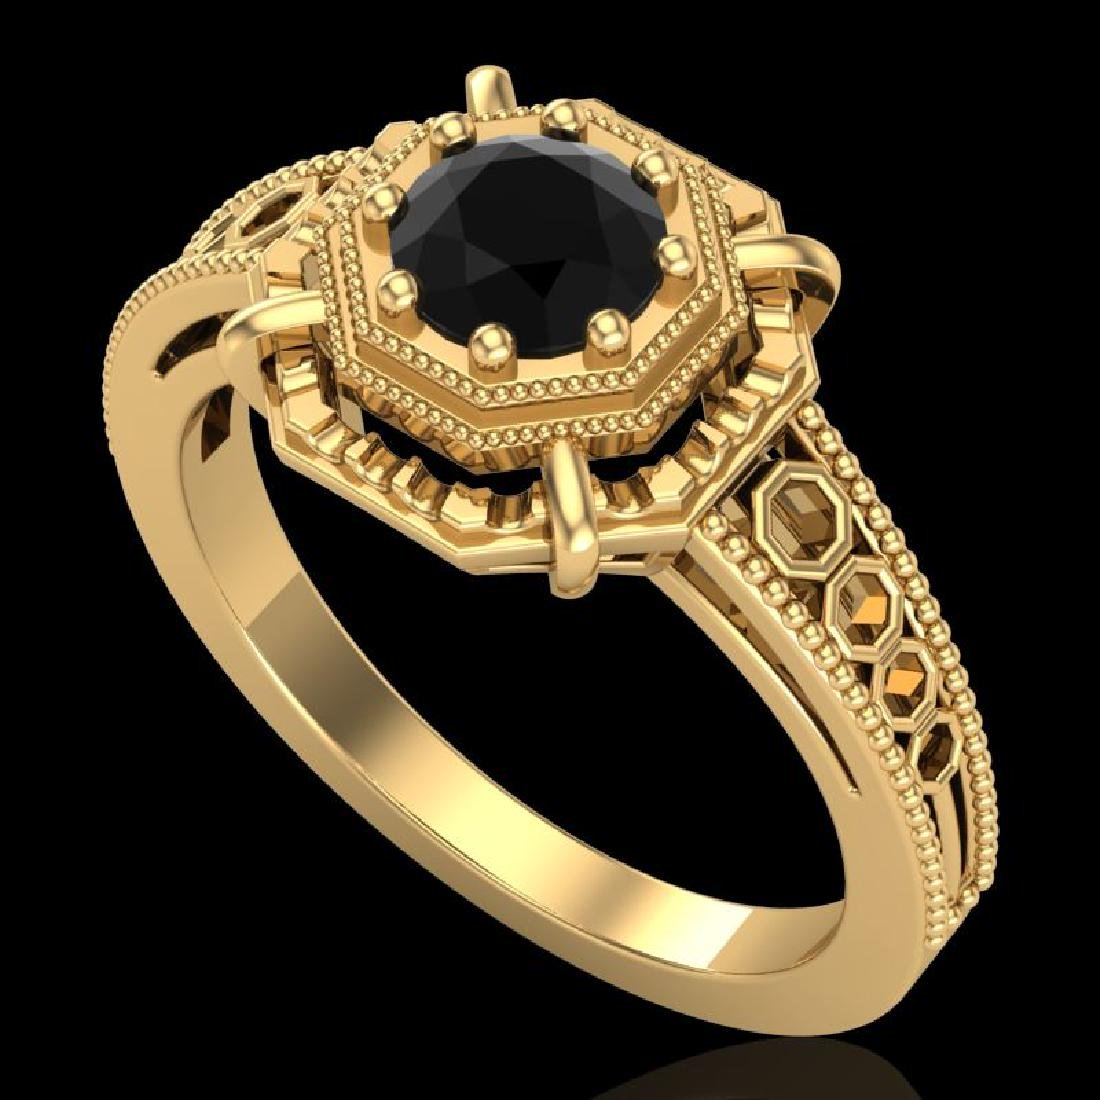 0.53 CTW Fancy Black Diamond Solitaire Engagement Art